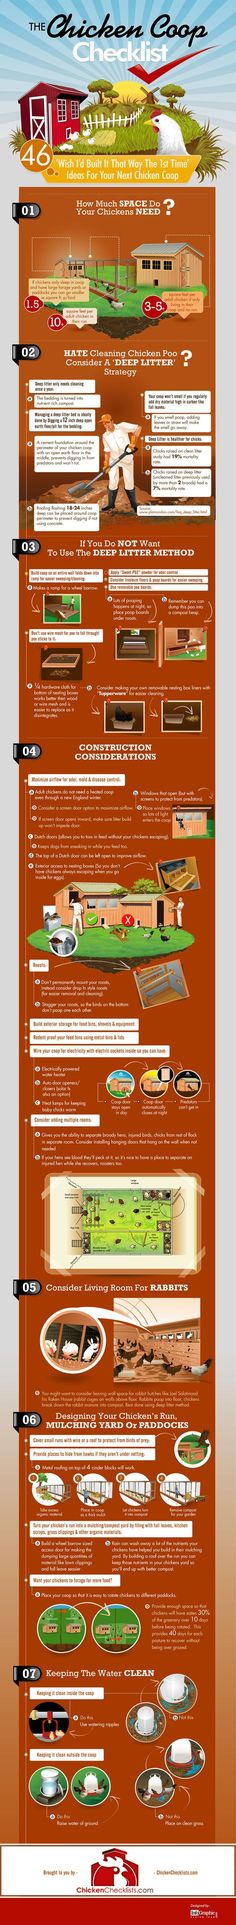 Chicken Coop Checklist   Ideas- wish I'd built it this way the first time......